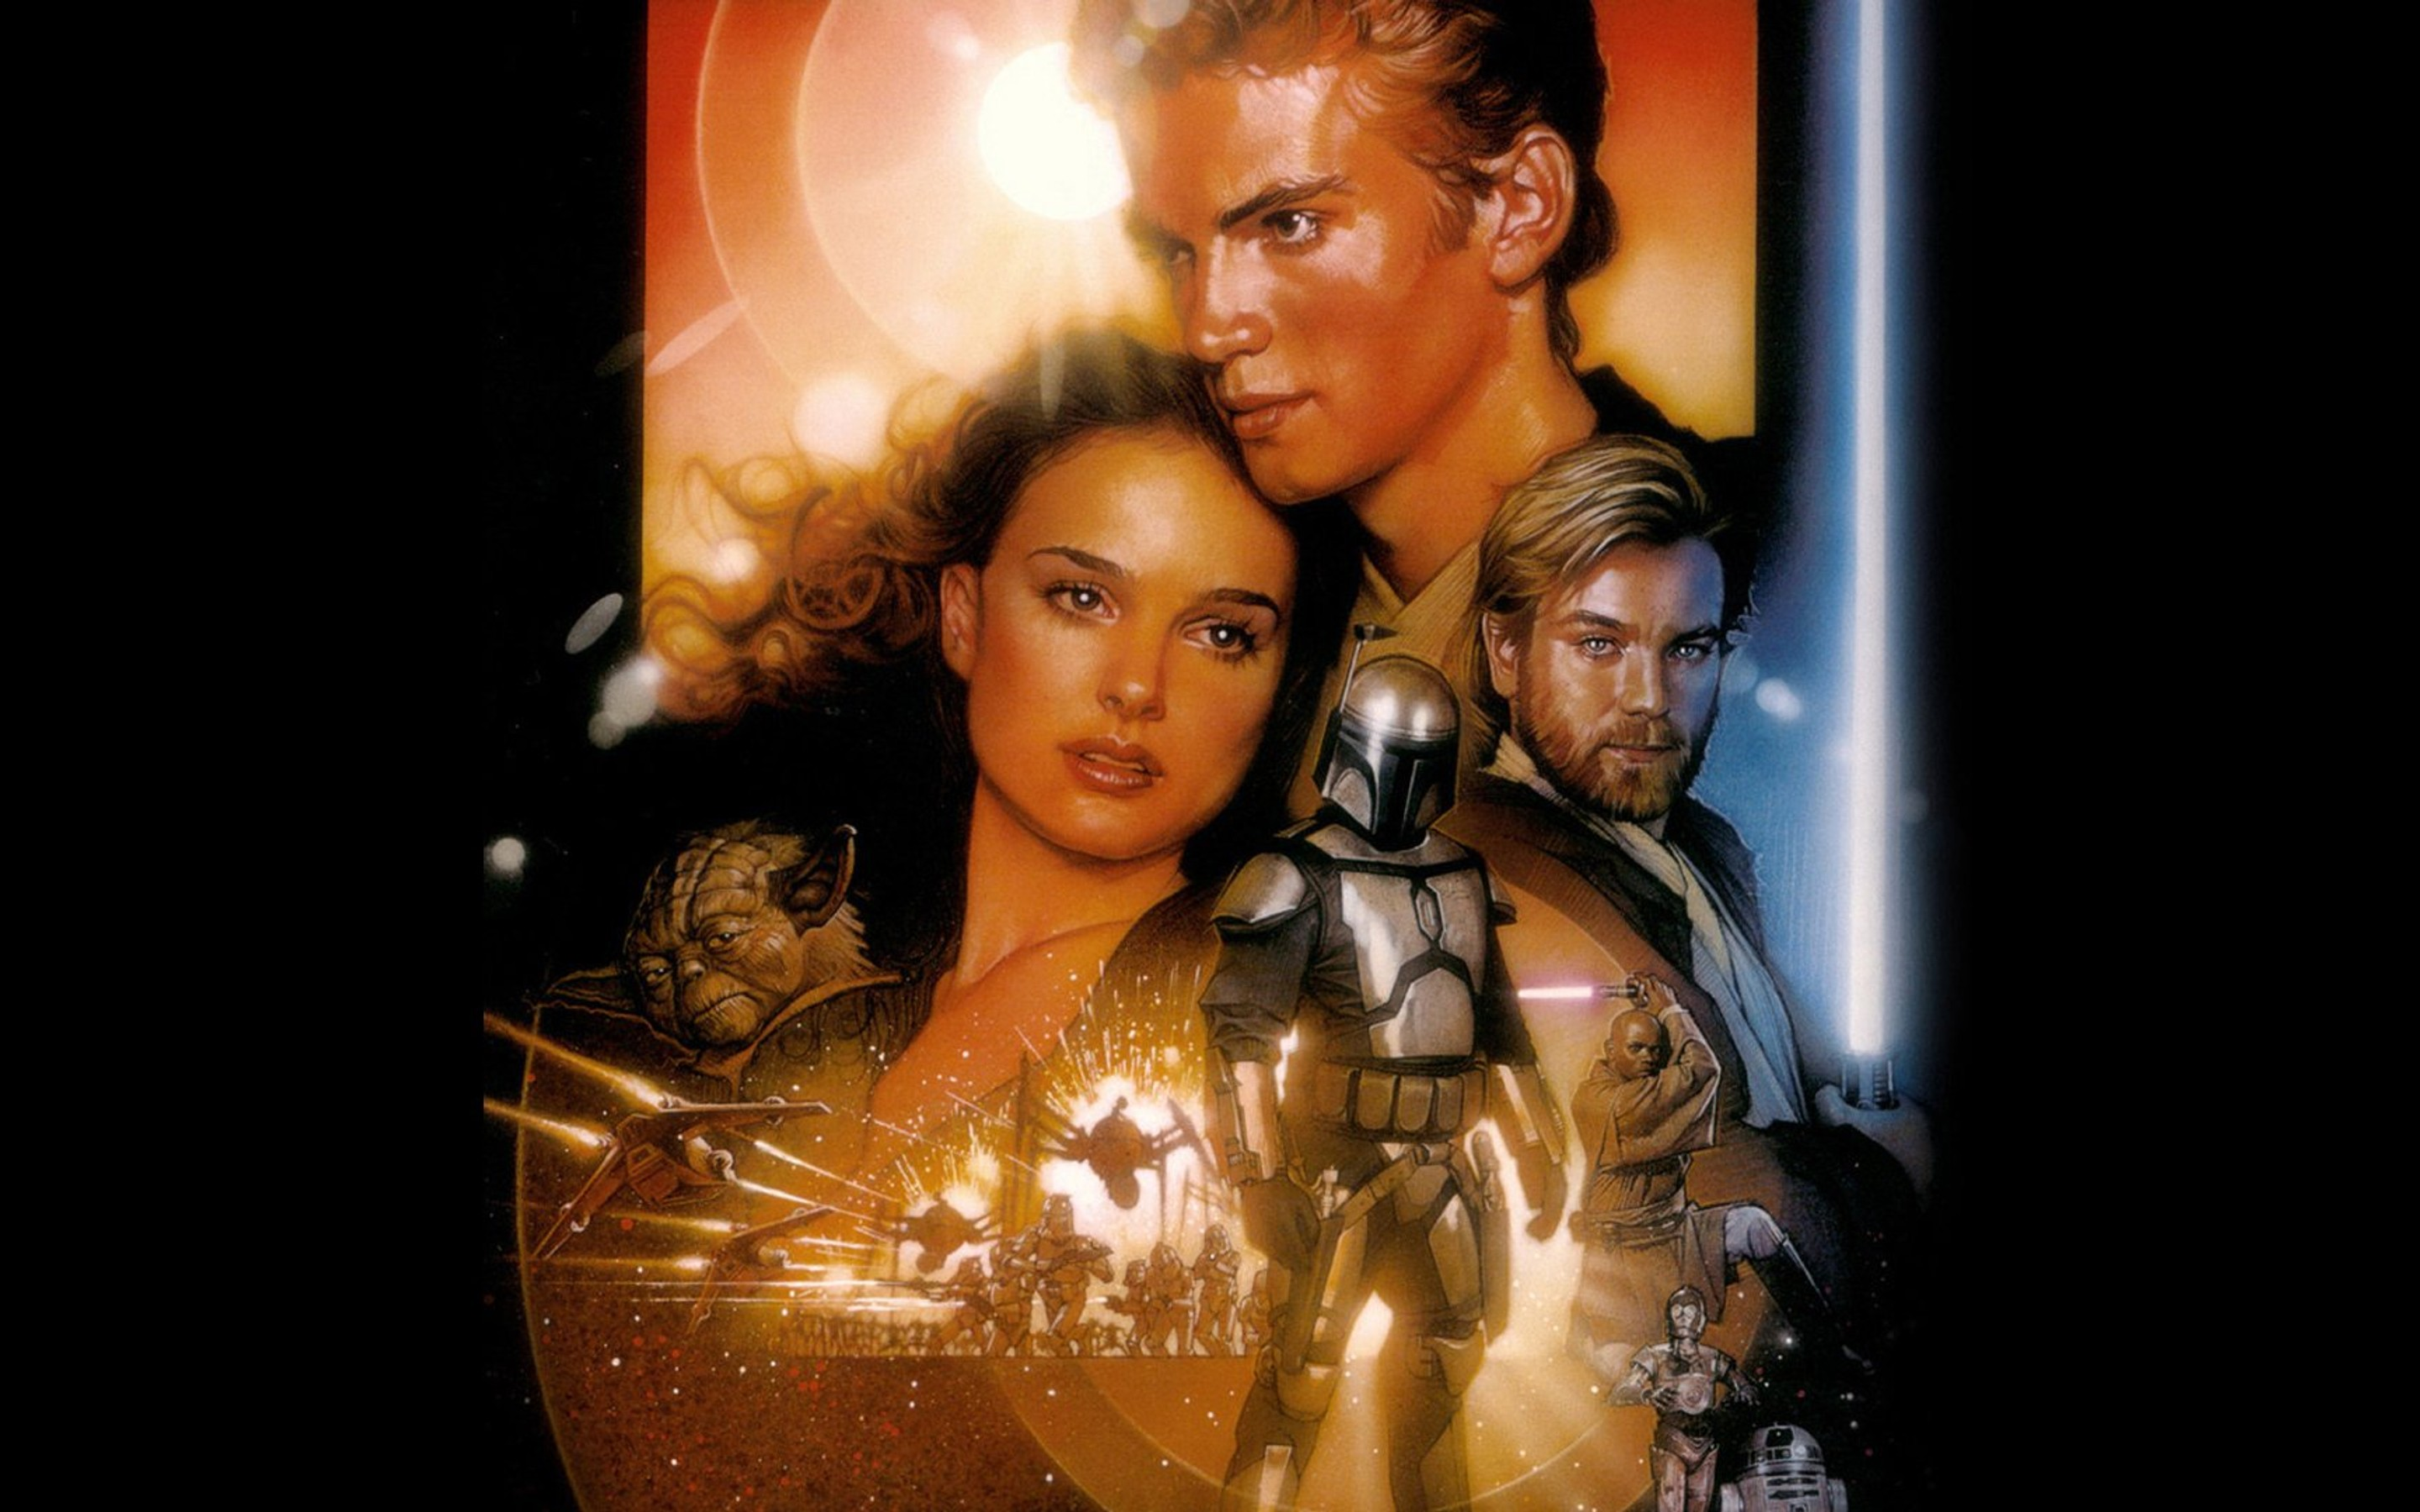 Star Wars Episode Ii Attack Of The Clones Hd Wallpaper Background Image 2880x1800 Id 977854 Wallpaper Abyss